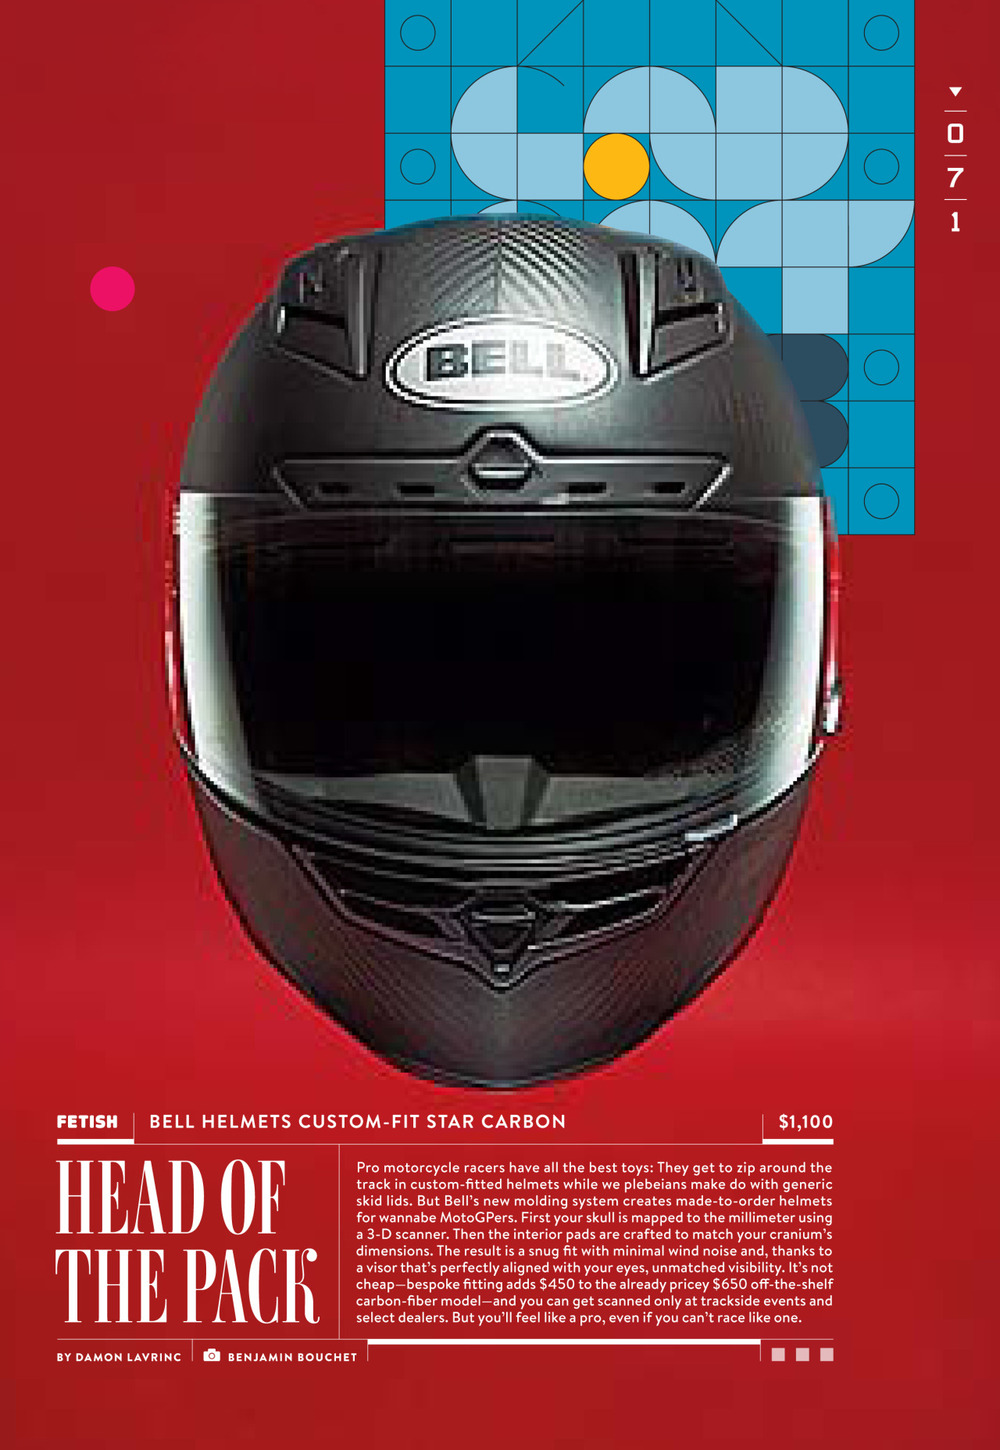 Bell Custom-Fit Star Carbon | WIRED 22.03